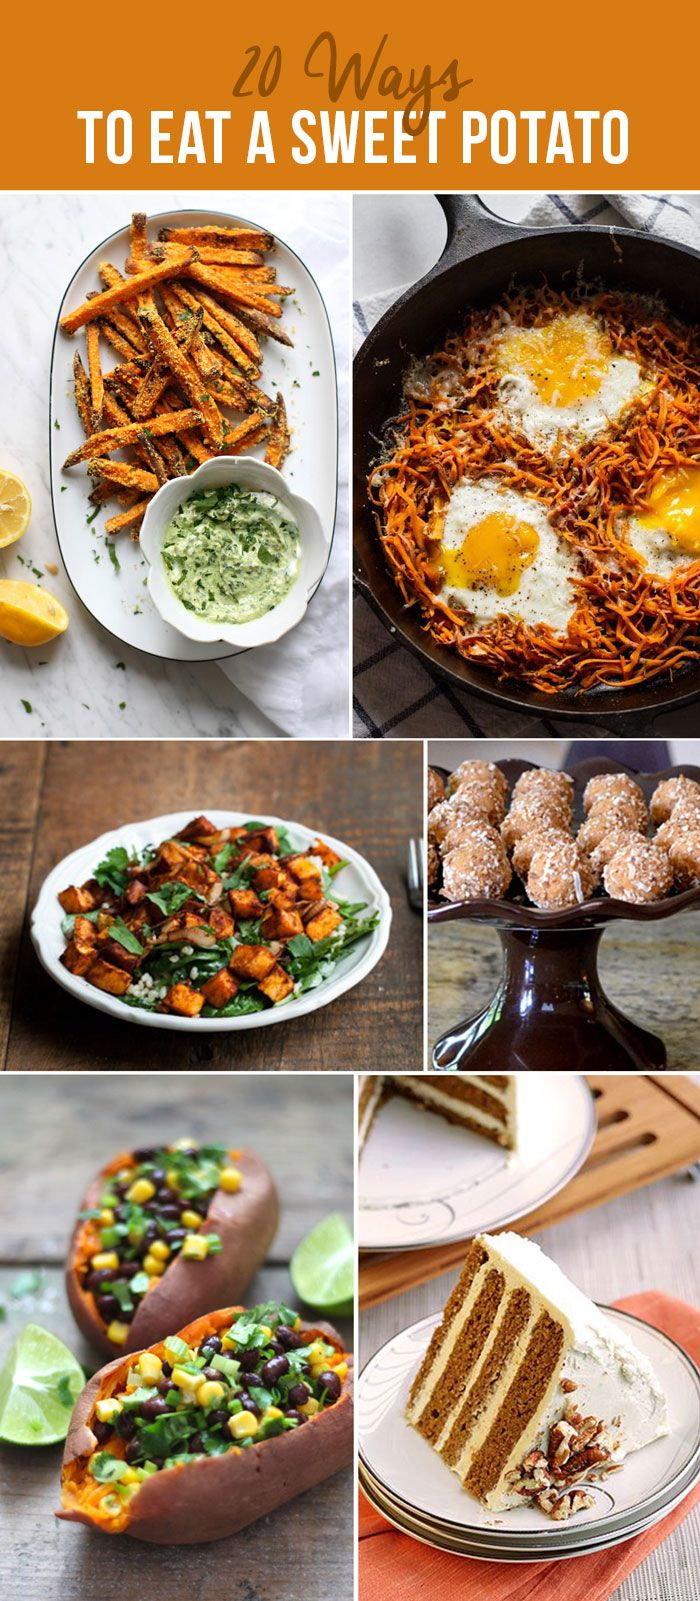 20 Ways to eat a sweet potato- Delicious recipes (including dinner, vegetarian, salad, soup AND desserts!)- You'll be stocked for life!